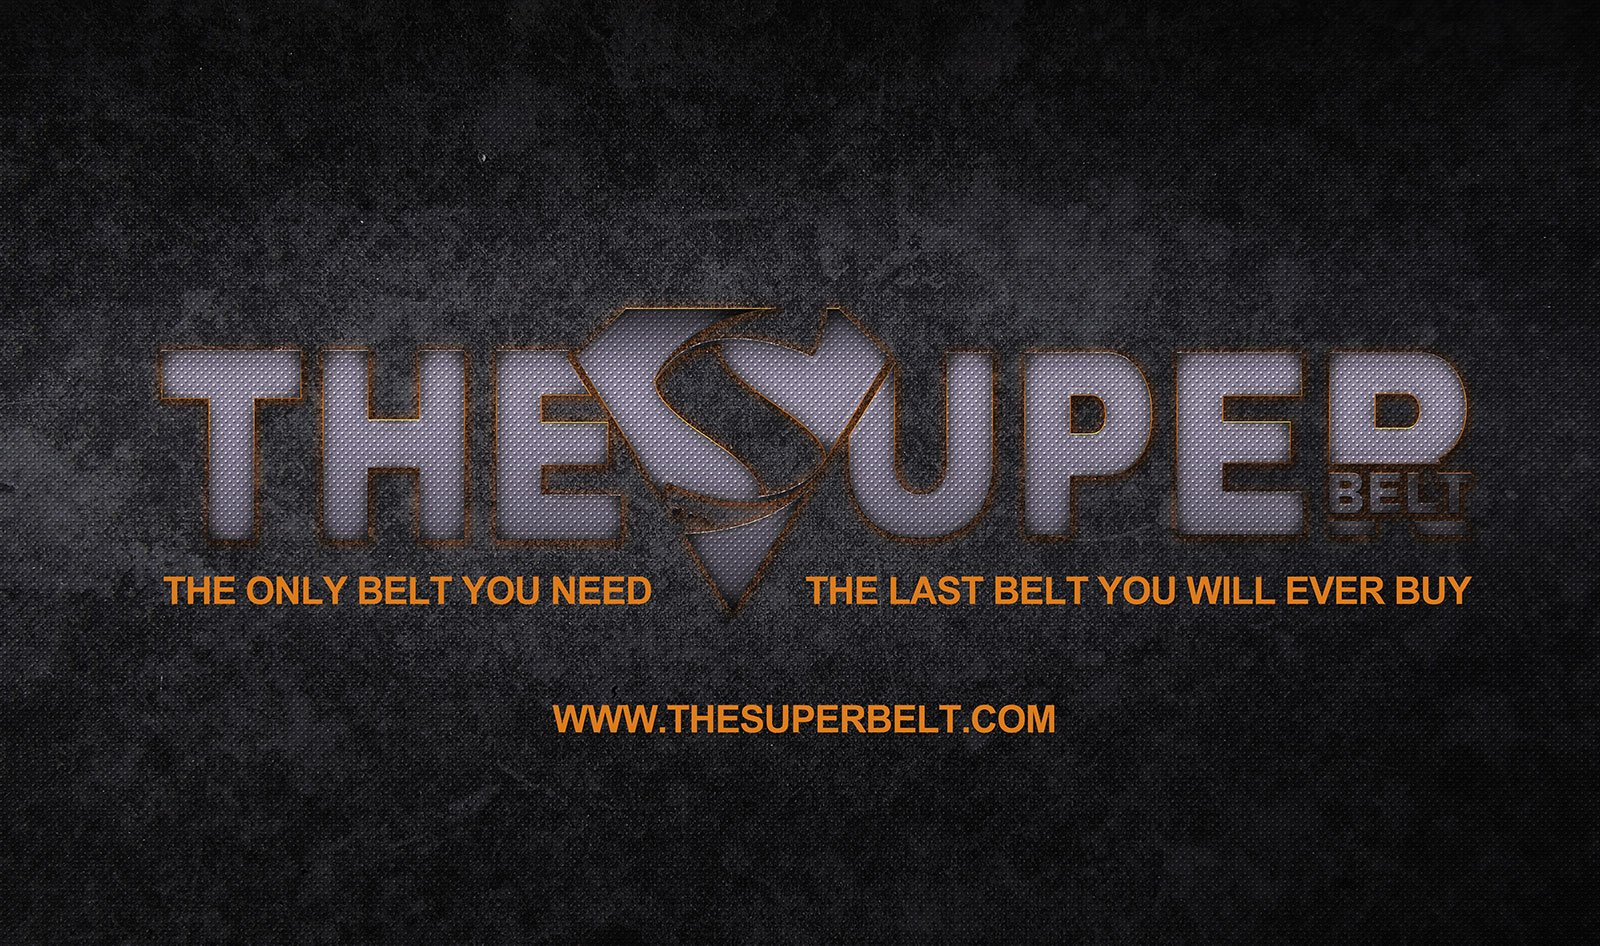 The Super Belt Logo Banner The Only Belt You Need and The Last Belt You'll Ever Buy web